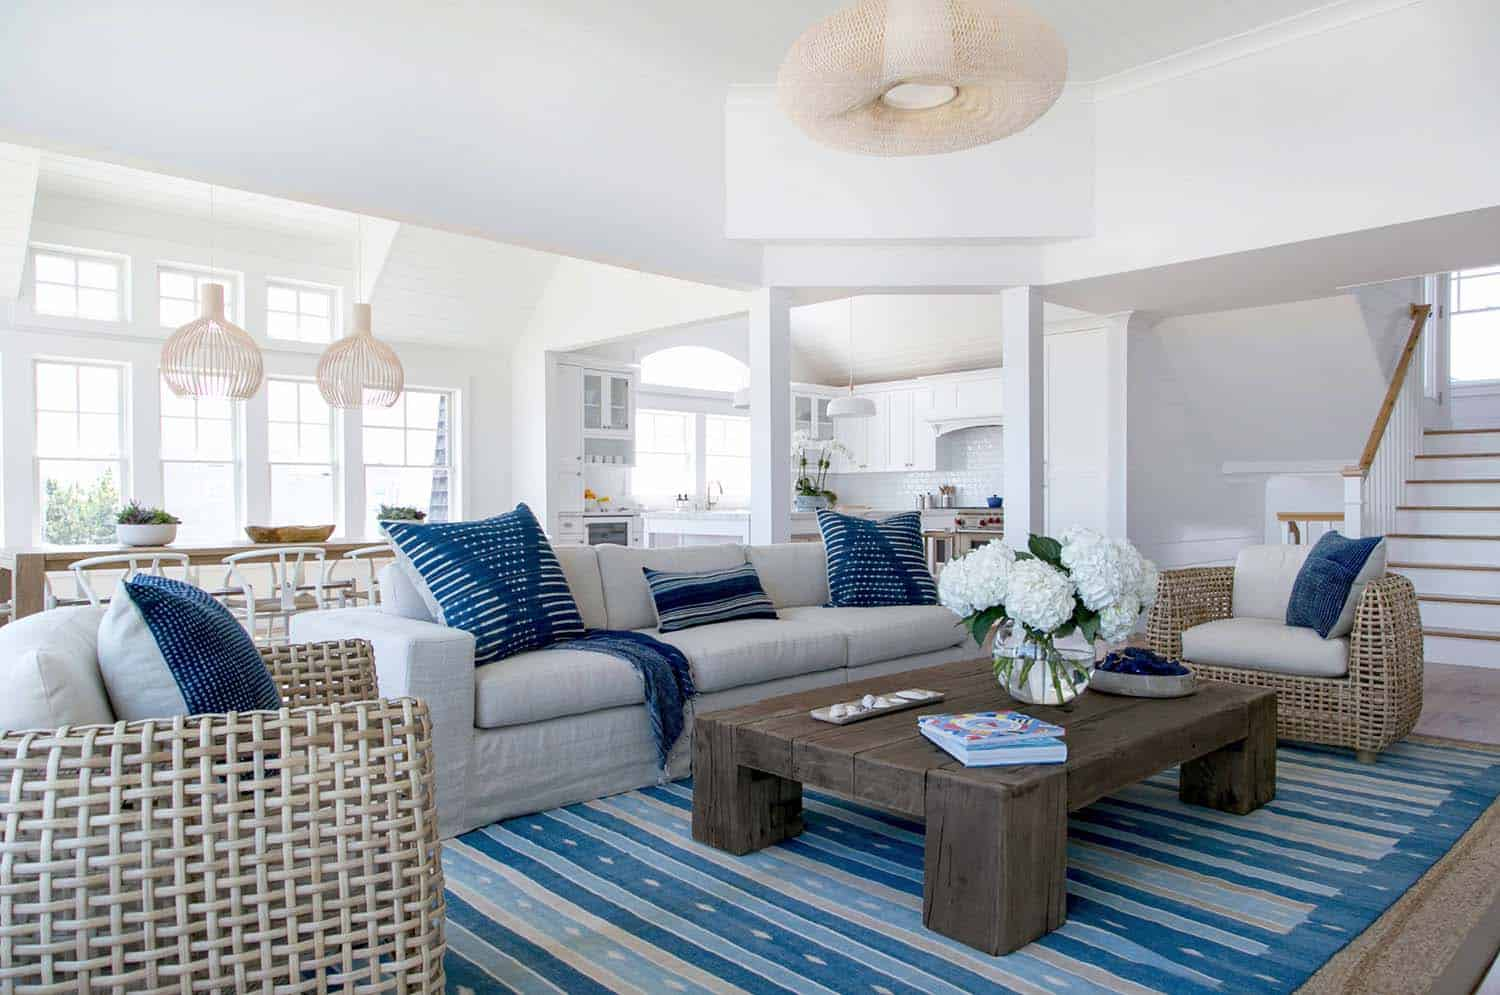 Coastal-Chic Beach Home-Chango Co-00-1 Kindesign